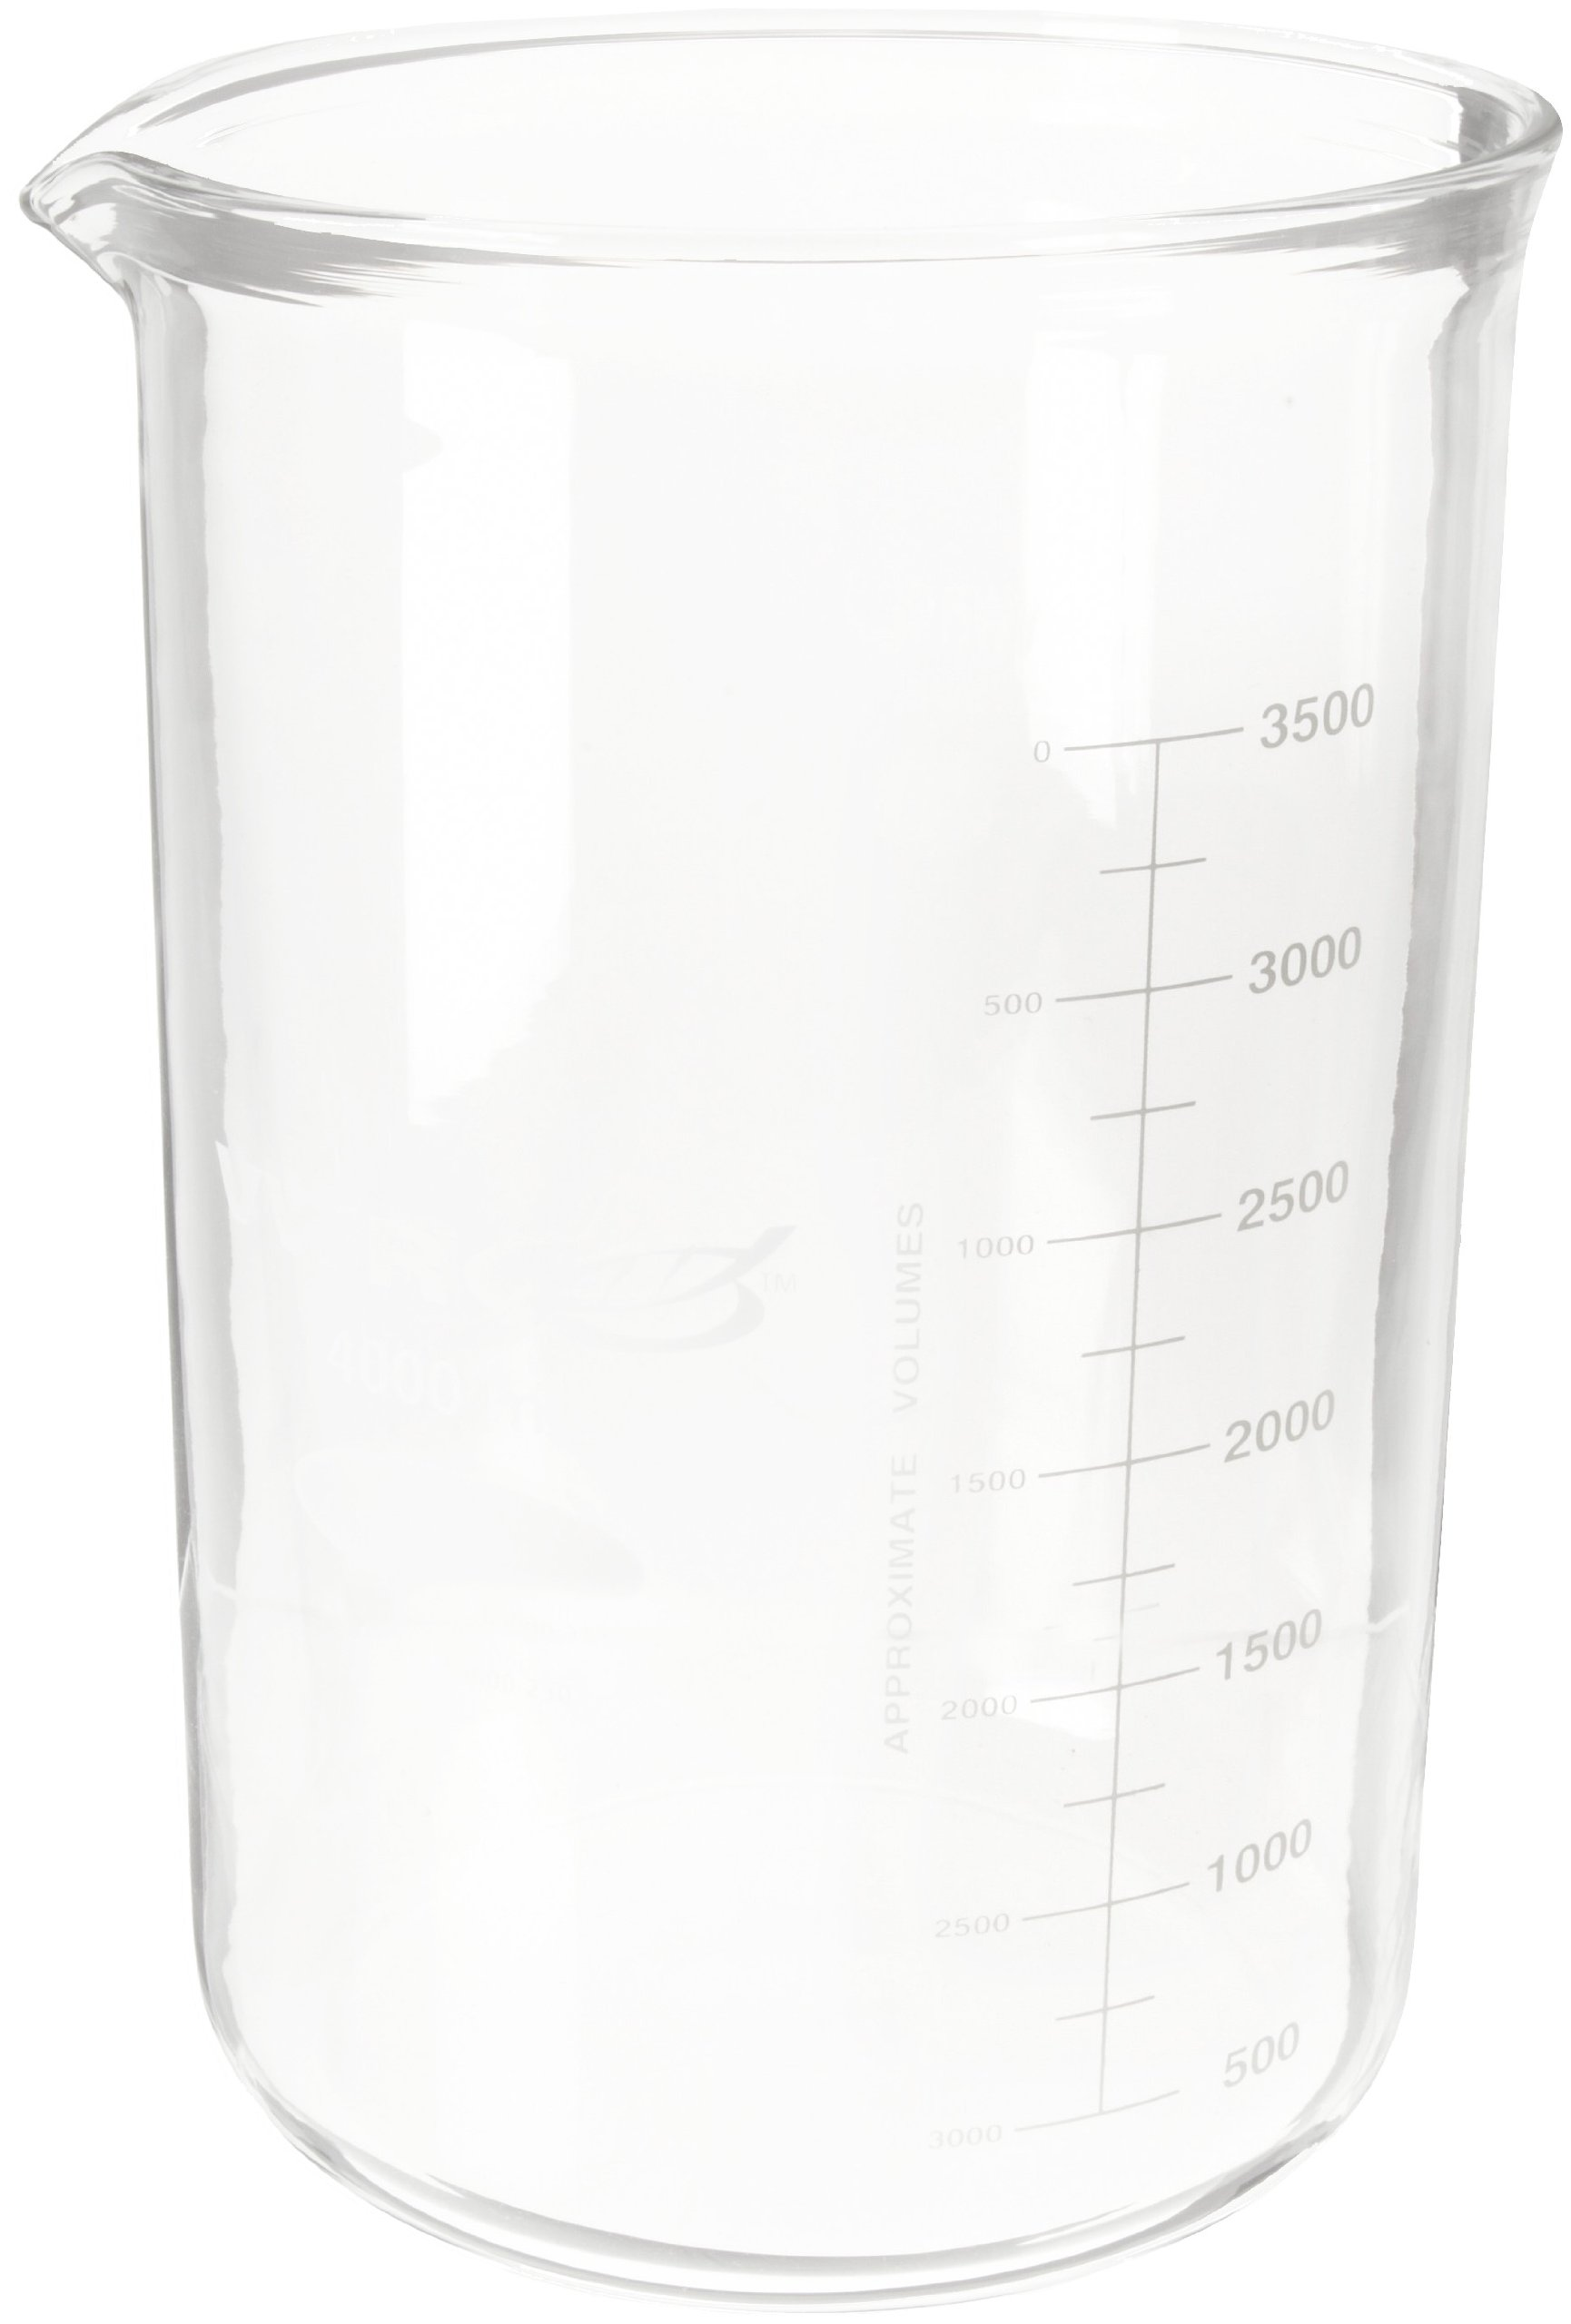 Kimble 14005-4000 Glass Heavy-Duty Low Form Beaker with Double Capacity Scale, 500-3500mL Graduation Interval, 4000mL Capacity, 500mL Graduation, White (Pack of 1)